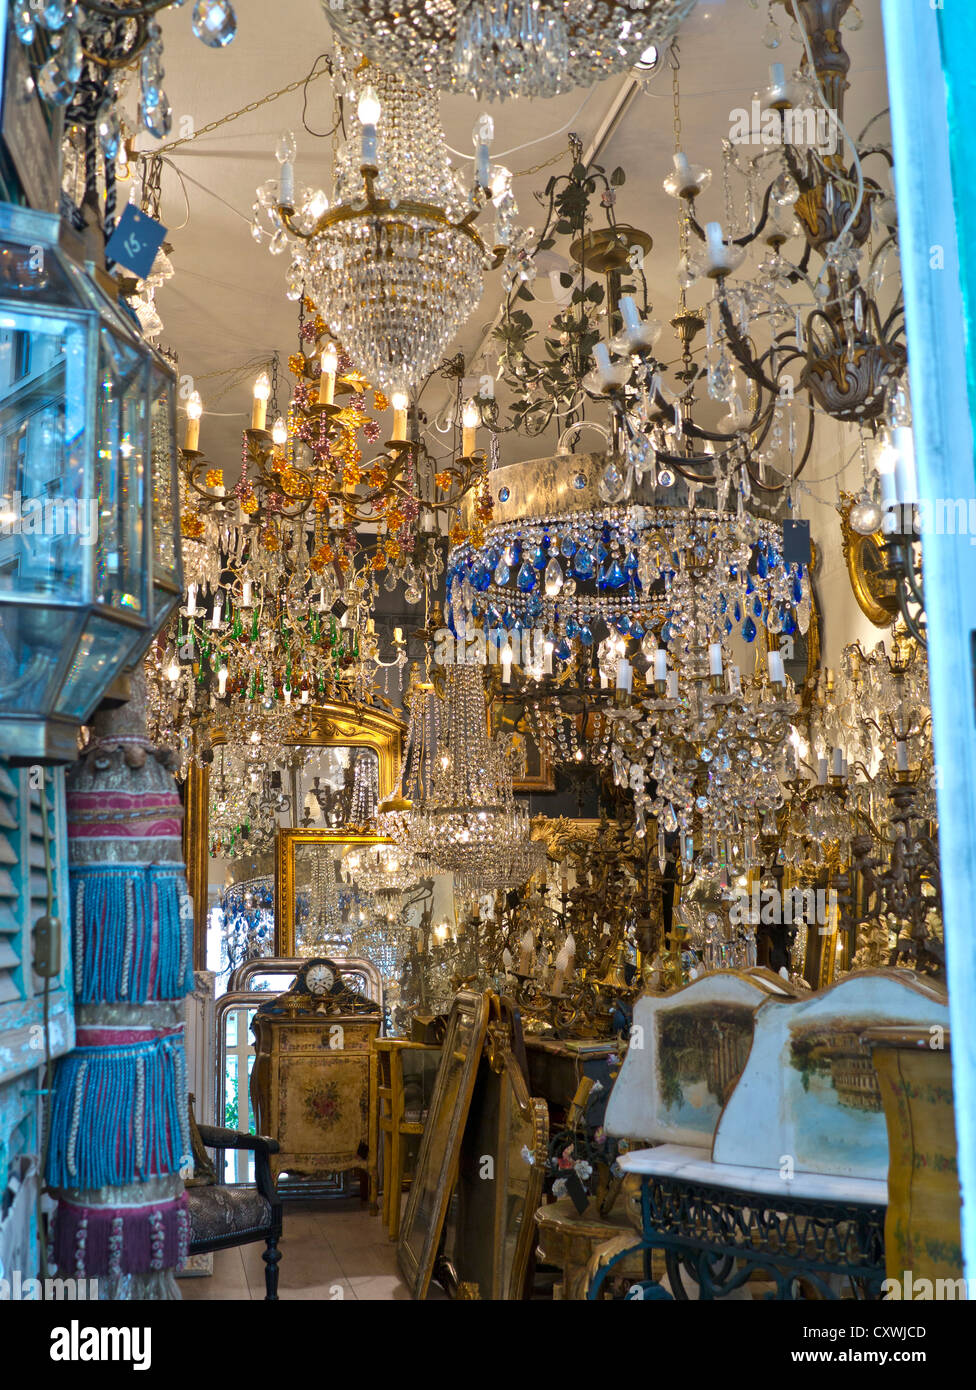 Antique bric a brac shop with variety of old crystal chandeliers on antique bric a brac shop with variety of old crystal chandeliers on display for sale aloadofball Choice Image